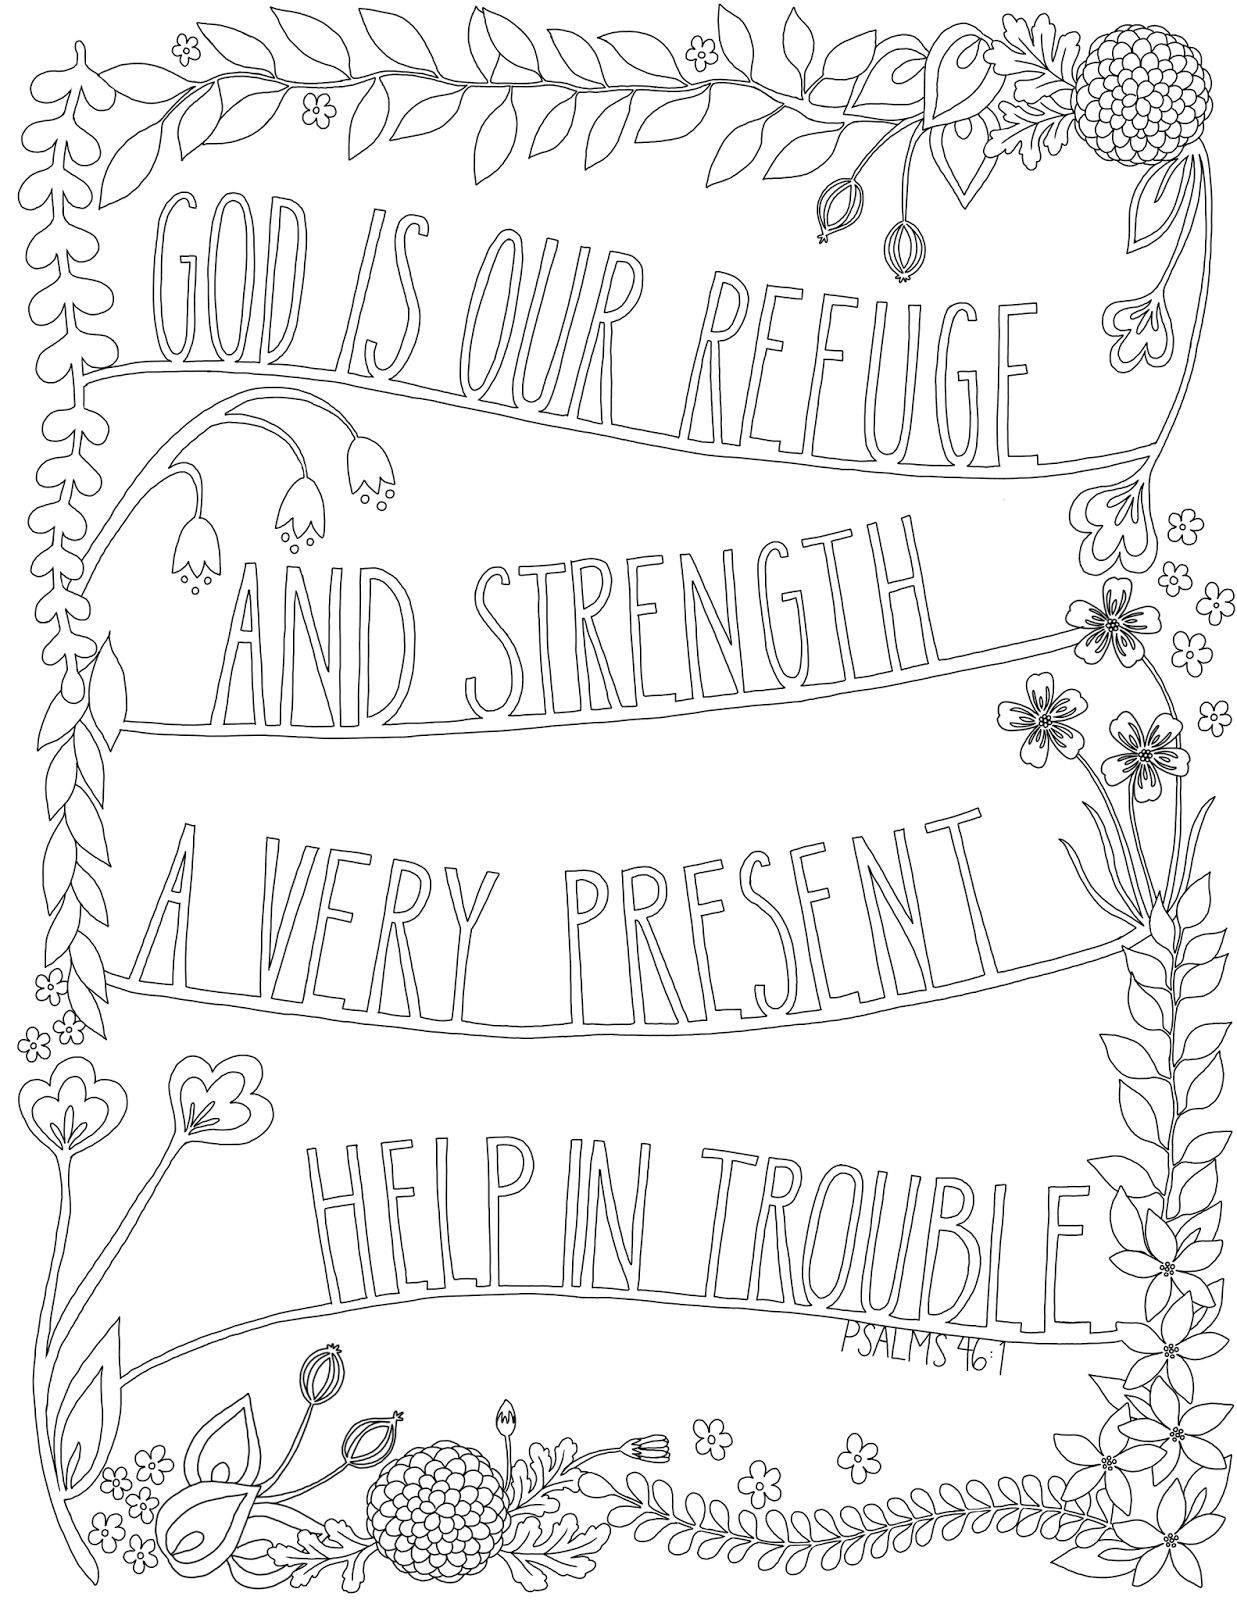 30 Coloring Pages For Your Best Friend Bible Verse Coloring Page Bible Verse Coloring Lds Coloring Pages